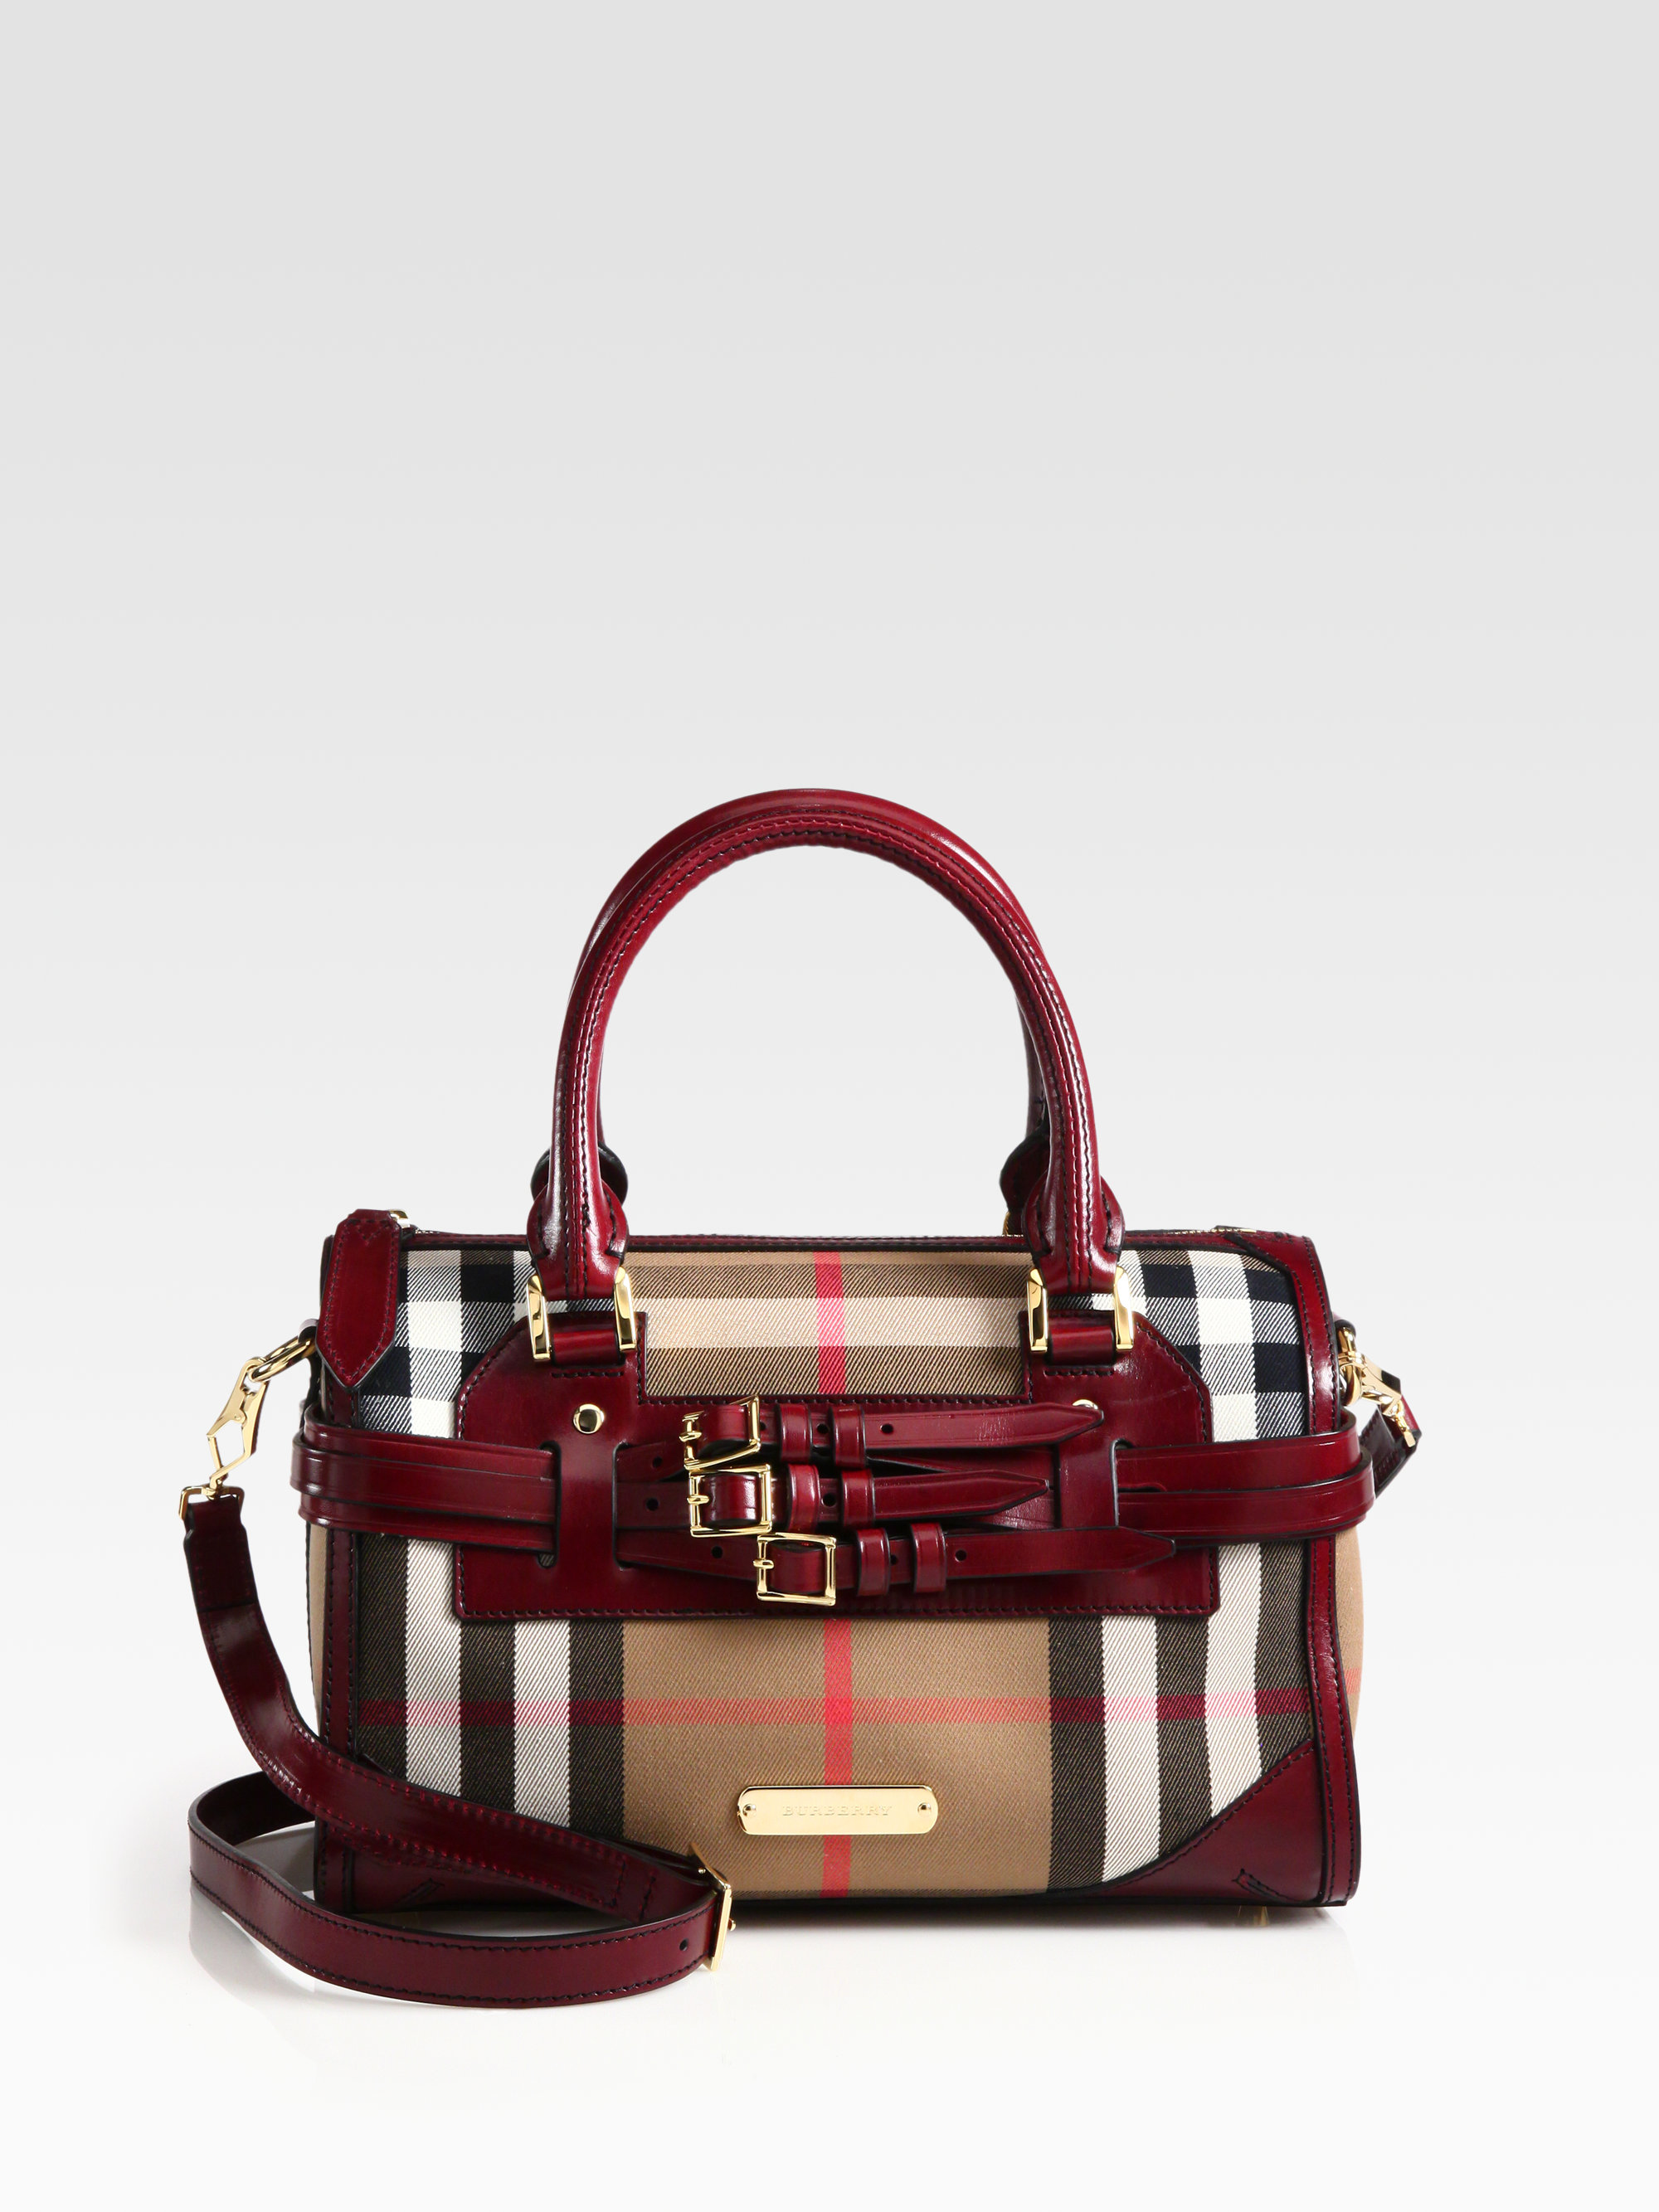 Lyst - Burberry Alchester Mixedmedia Bridle Satchel in Brown 8454a1e7f171b